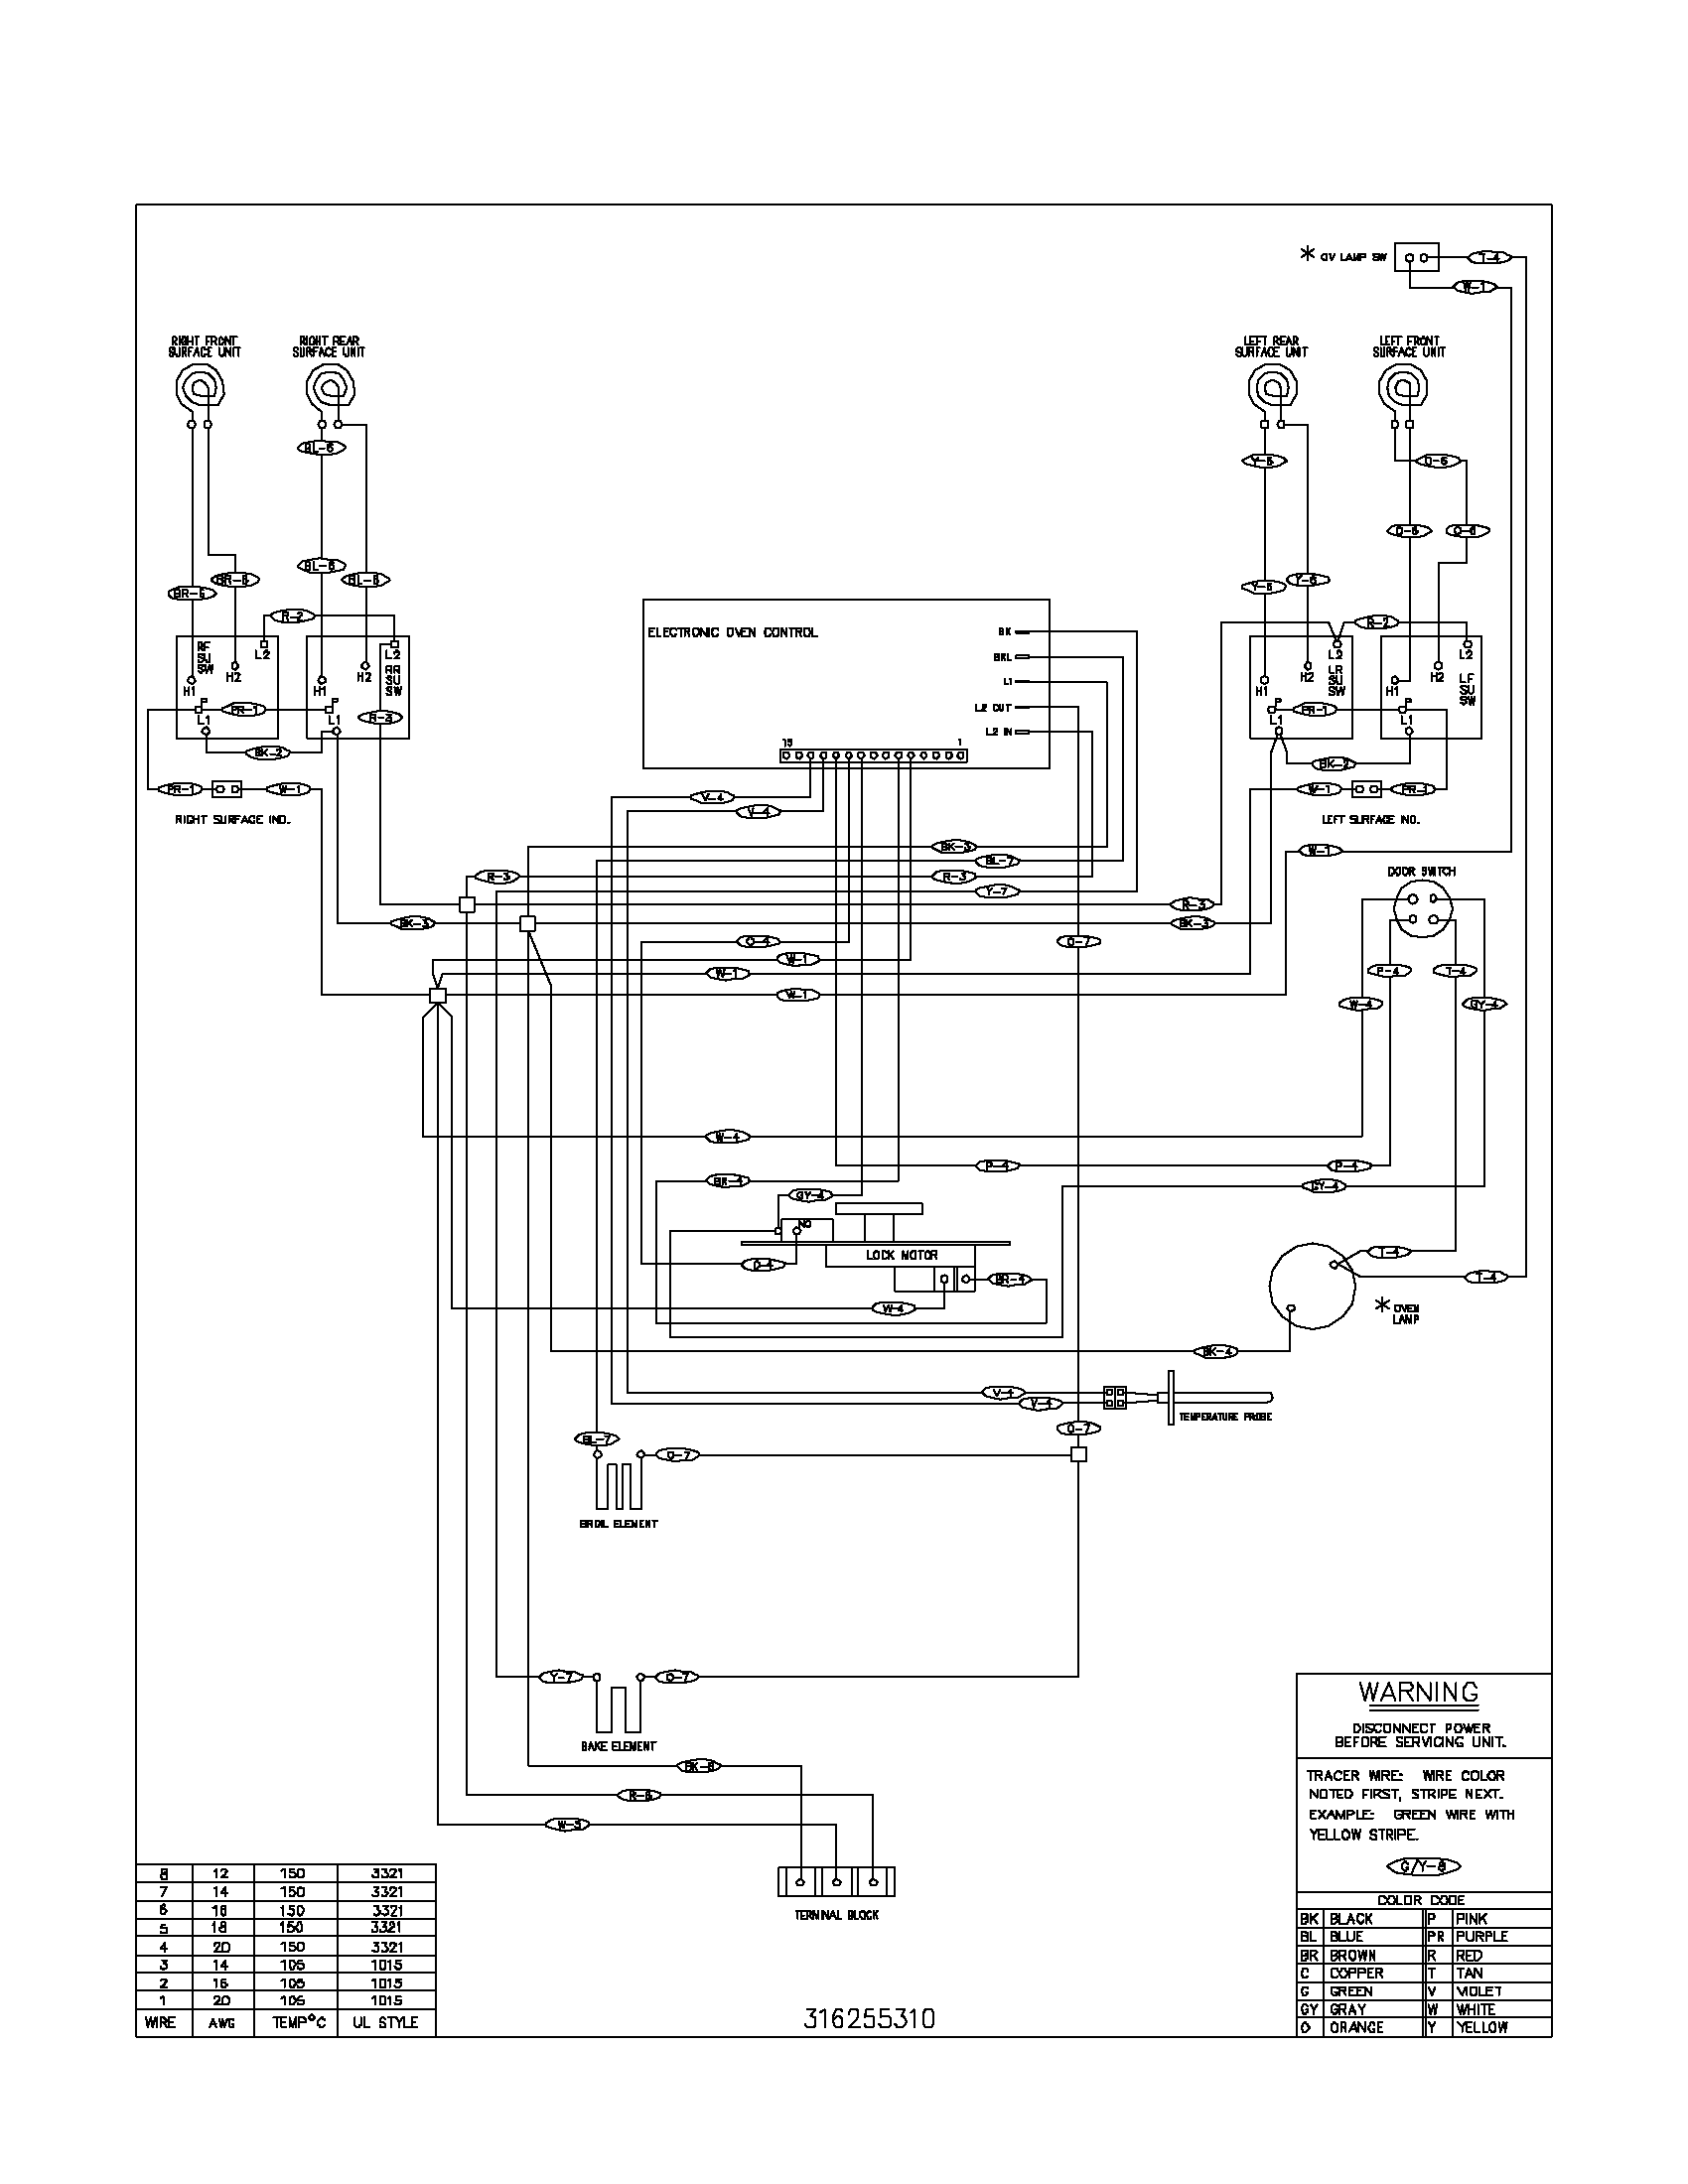 whirlpool electric dryer wiring diagram with Appliance on 4234703030 further Bosch Dishwasher Parts Schematic Bosch Refrigerator Parts List Bosch Dishwasher Wiring Diagram In P0308153 00008  Bosch Exxcel Dishwasher Parts Diagram furthermore Amana Refrigerator Problems Not Cooling also Index together with Whirlpool Gas Range Wiring Diagram.